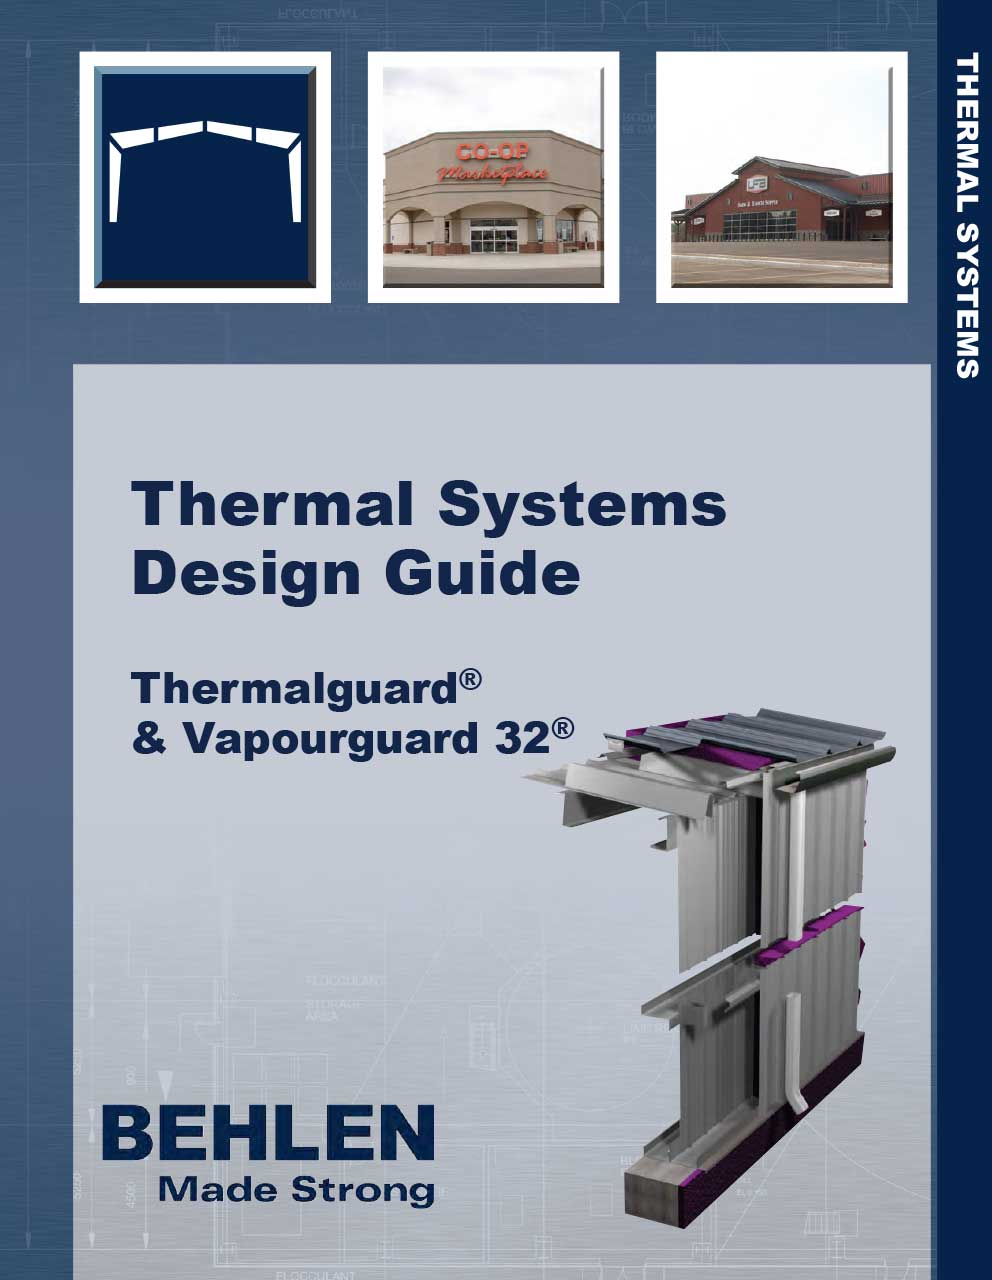 Behlen Industries - Thermal Systems Design Guide